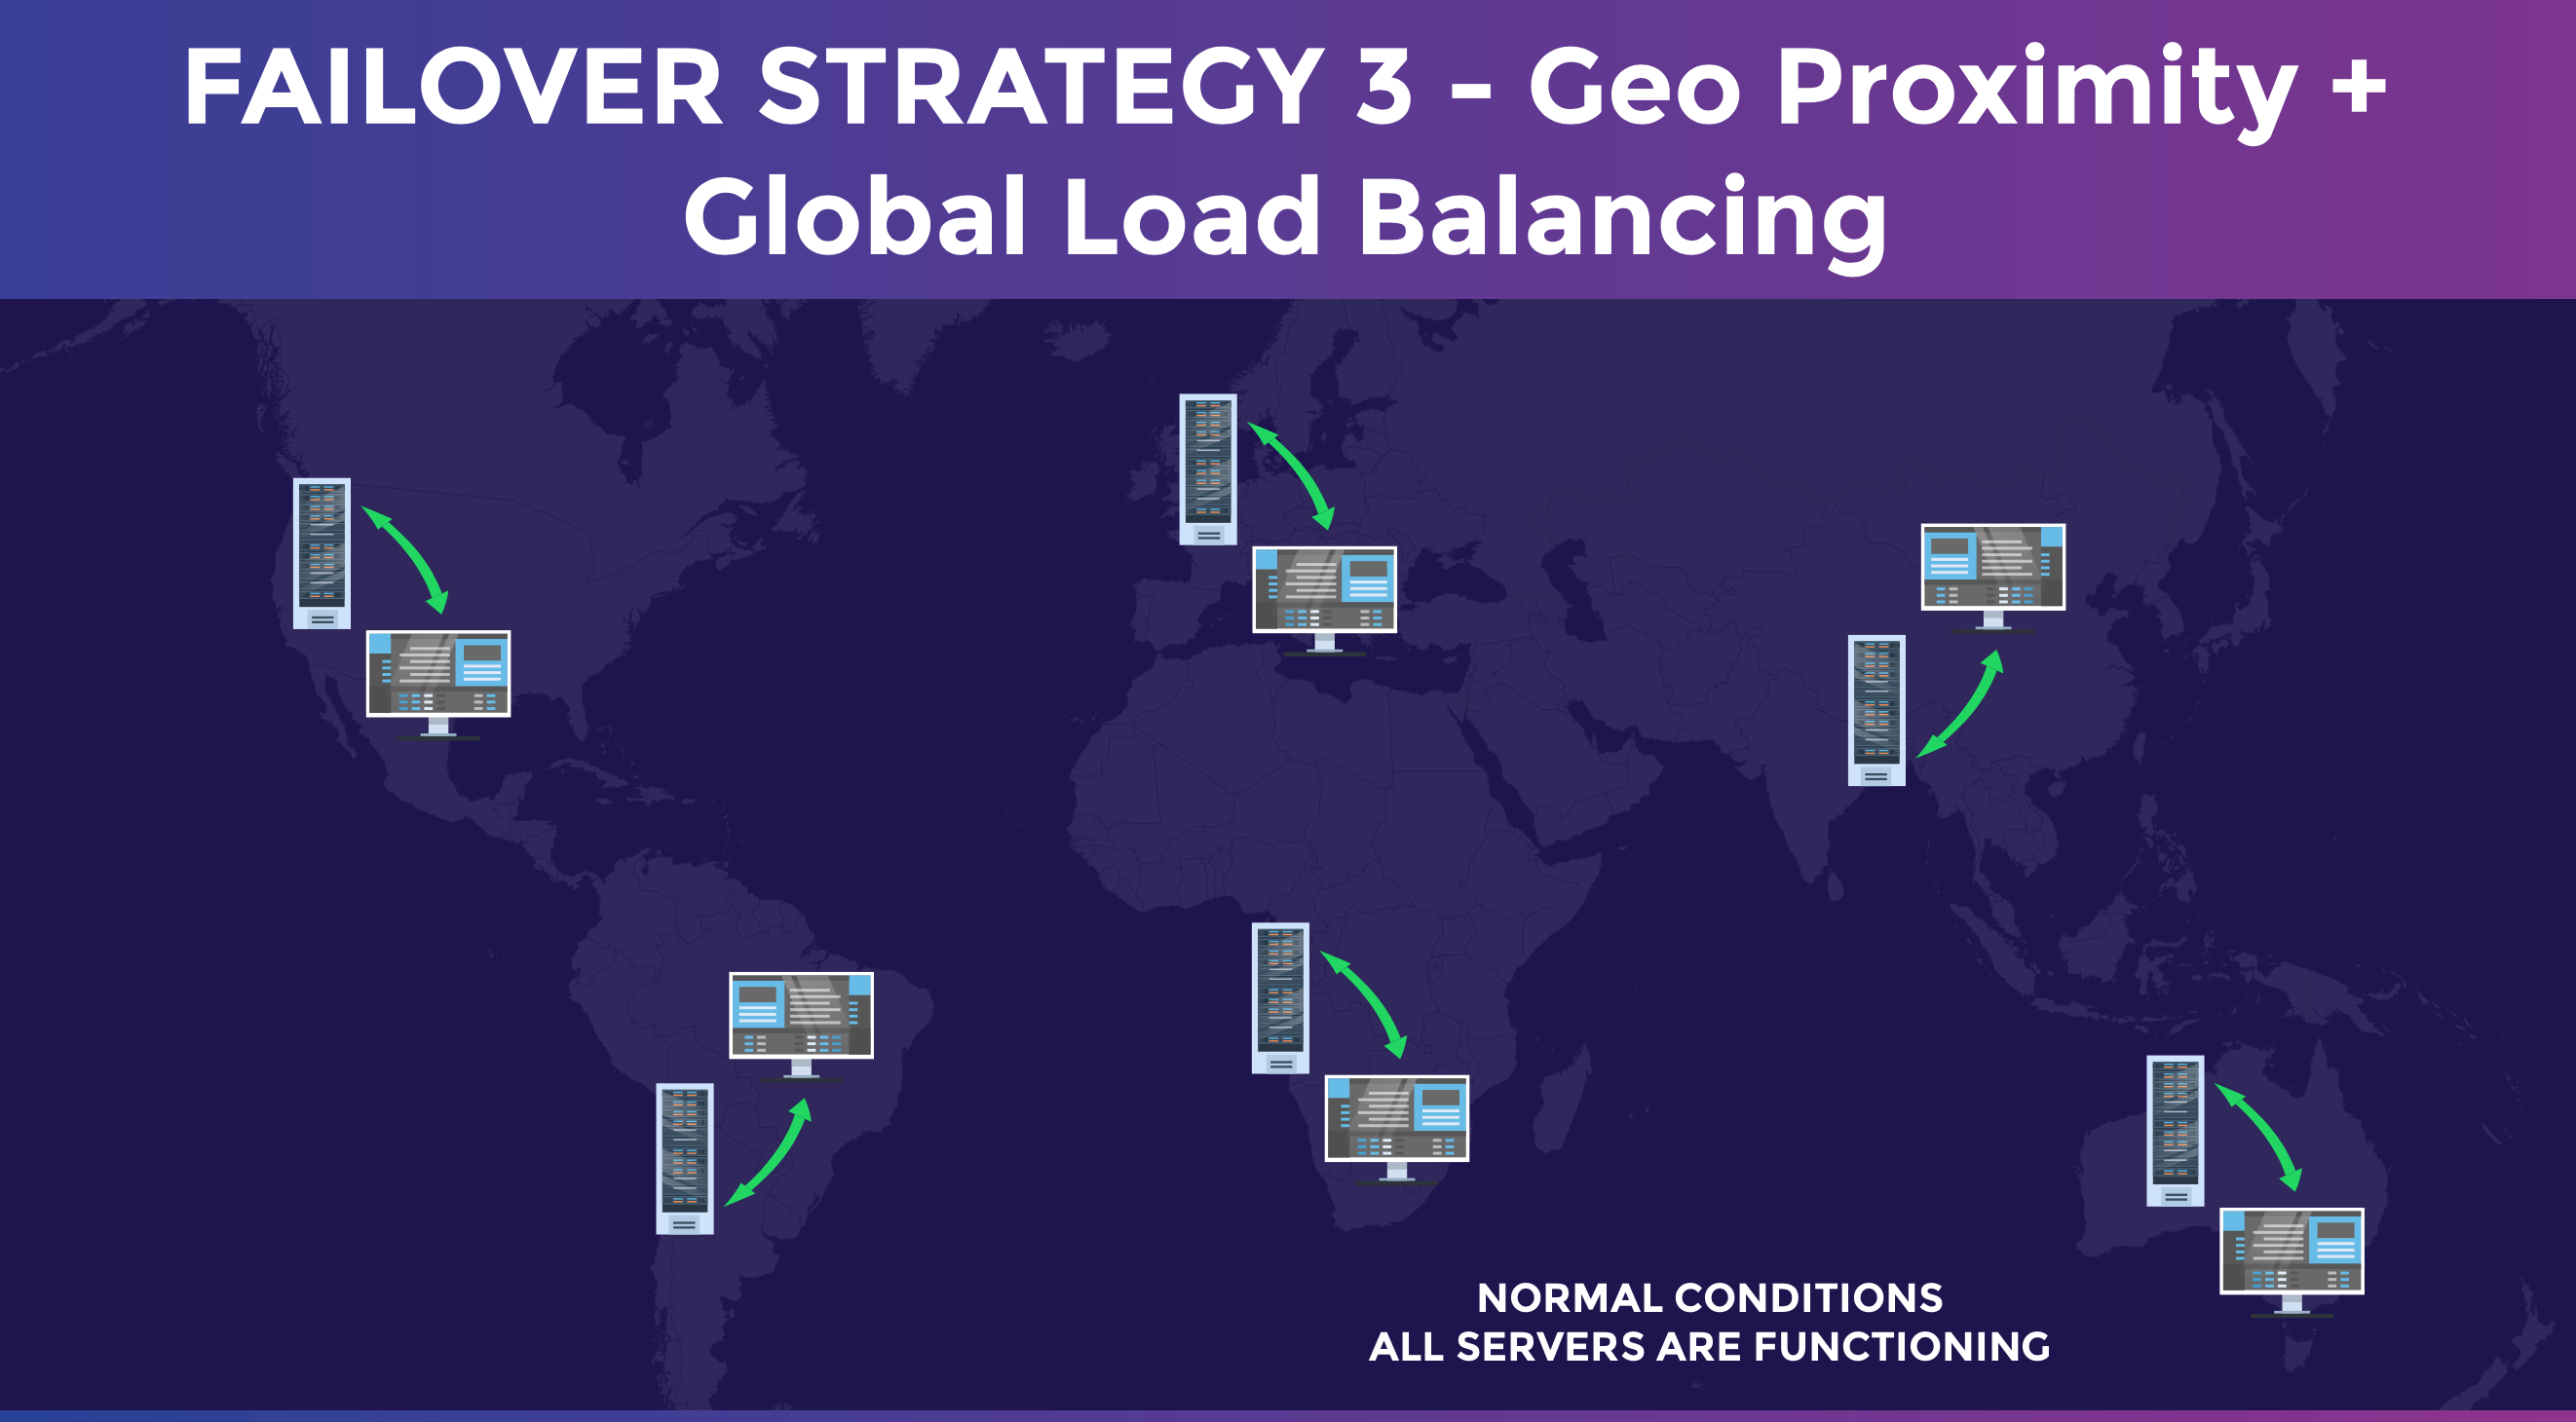 DNS Failover Strategy 3 - Geo Proximity and Global Load Balancing Example Infographic